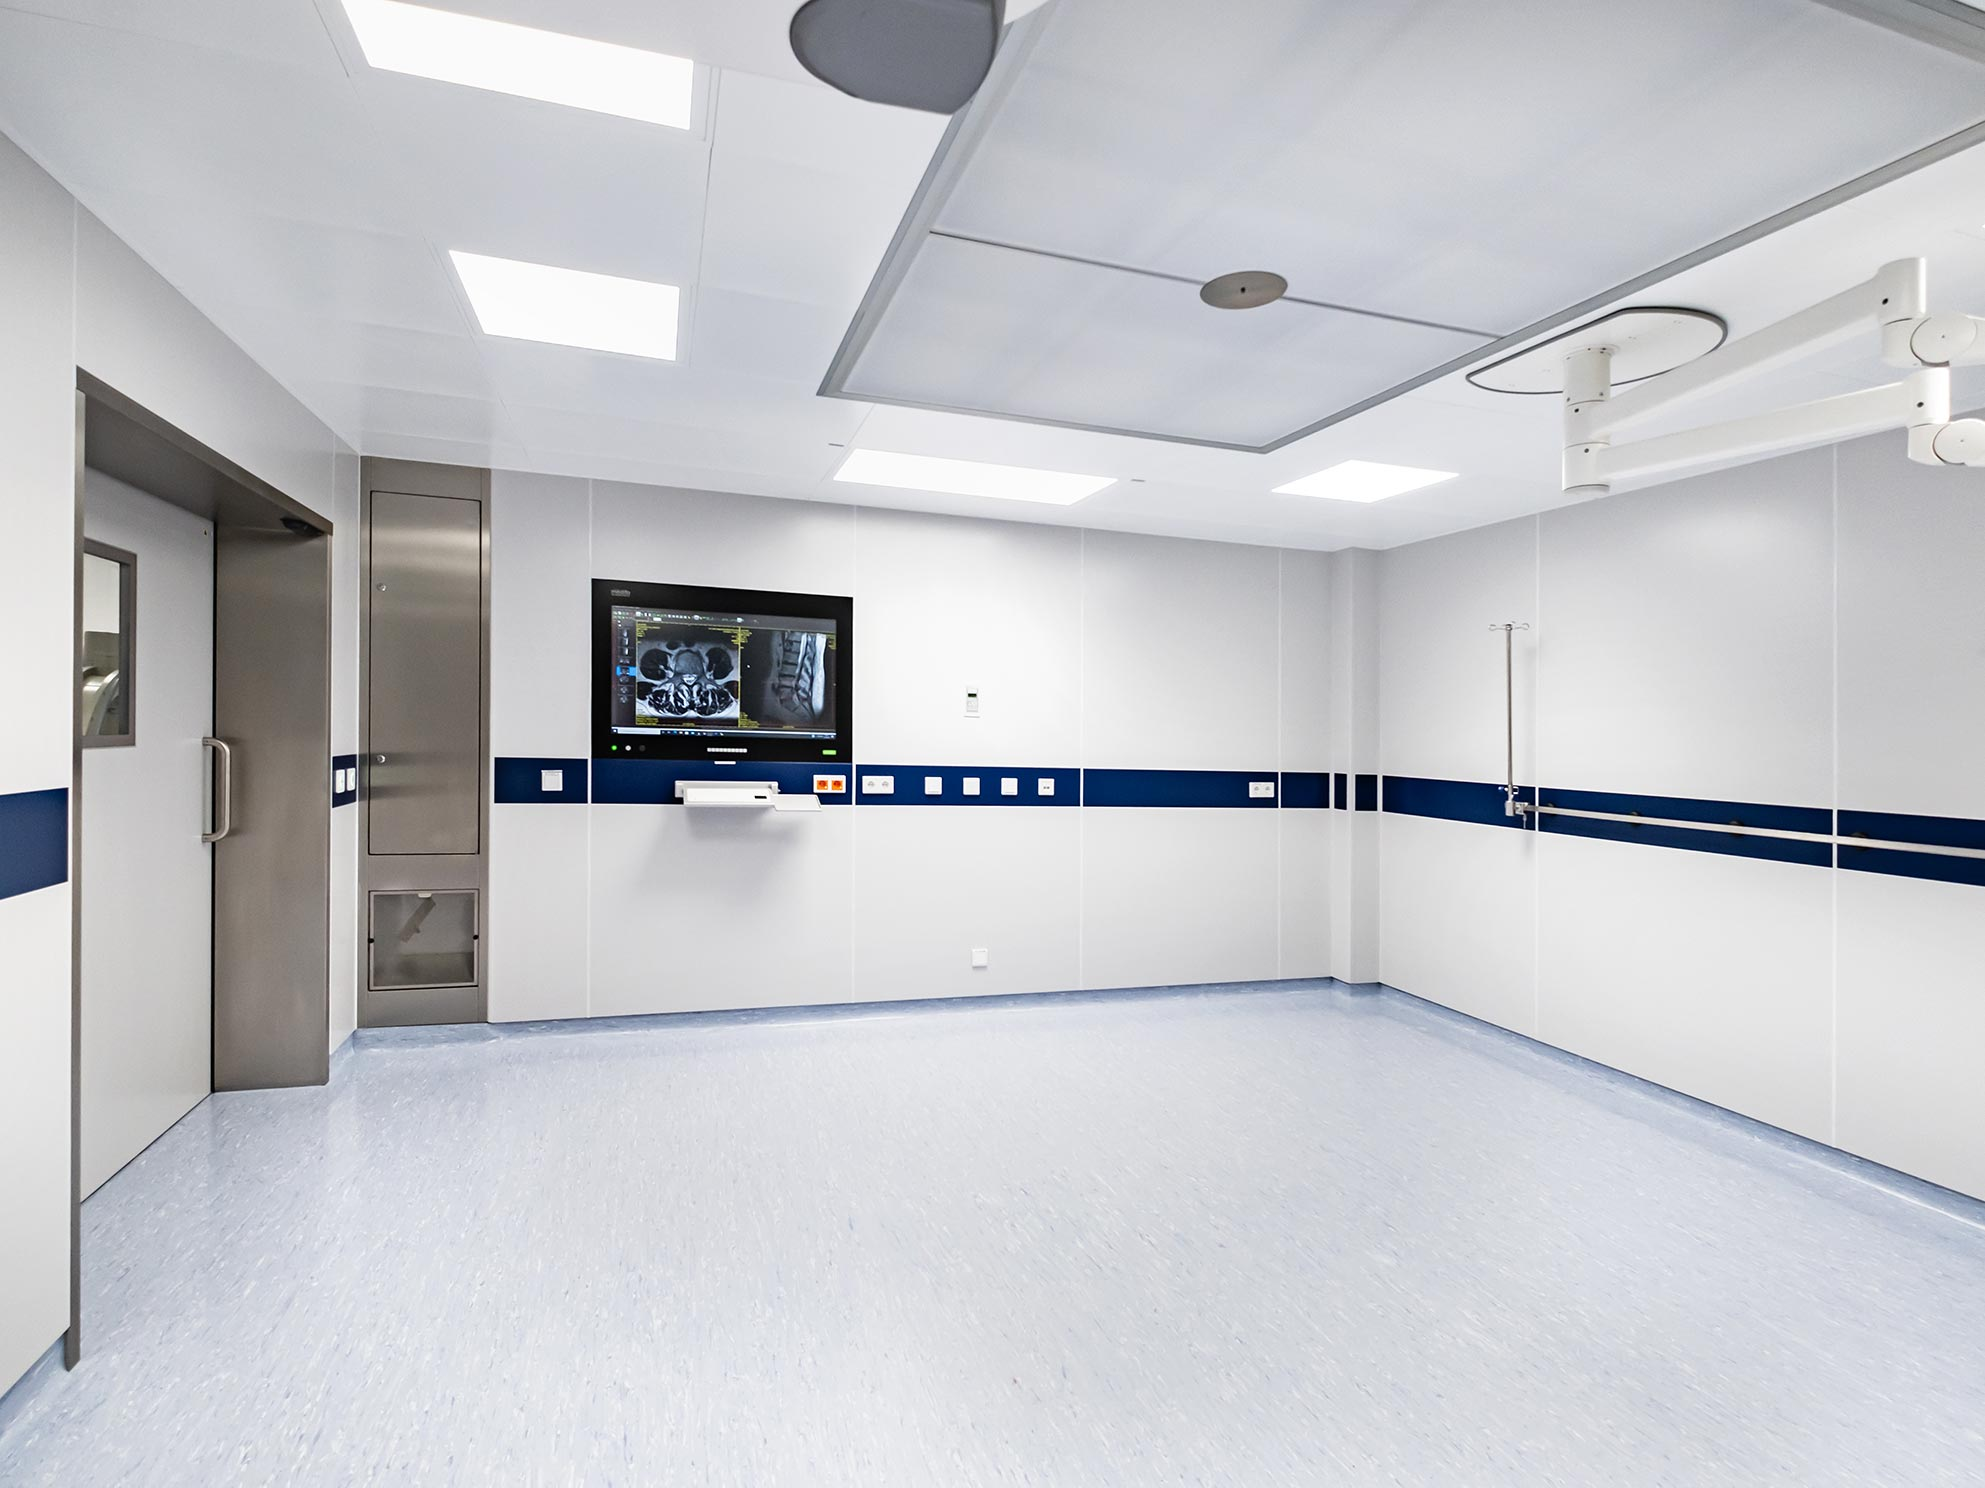 Modular_room_hospital_RooSy_Germany_Offenbach